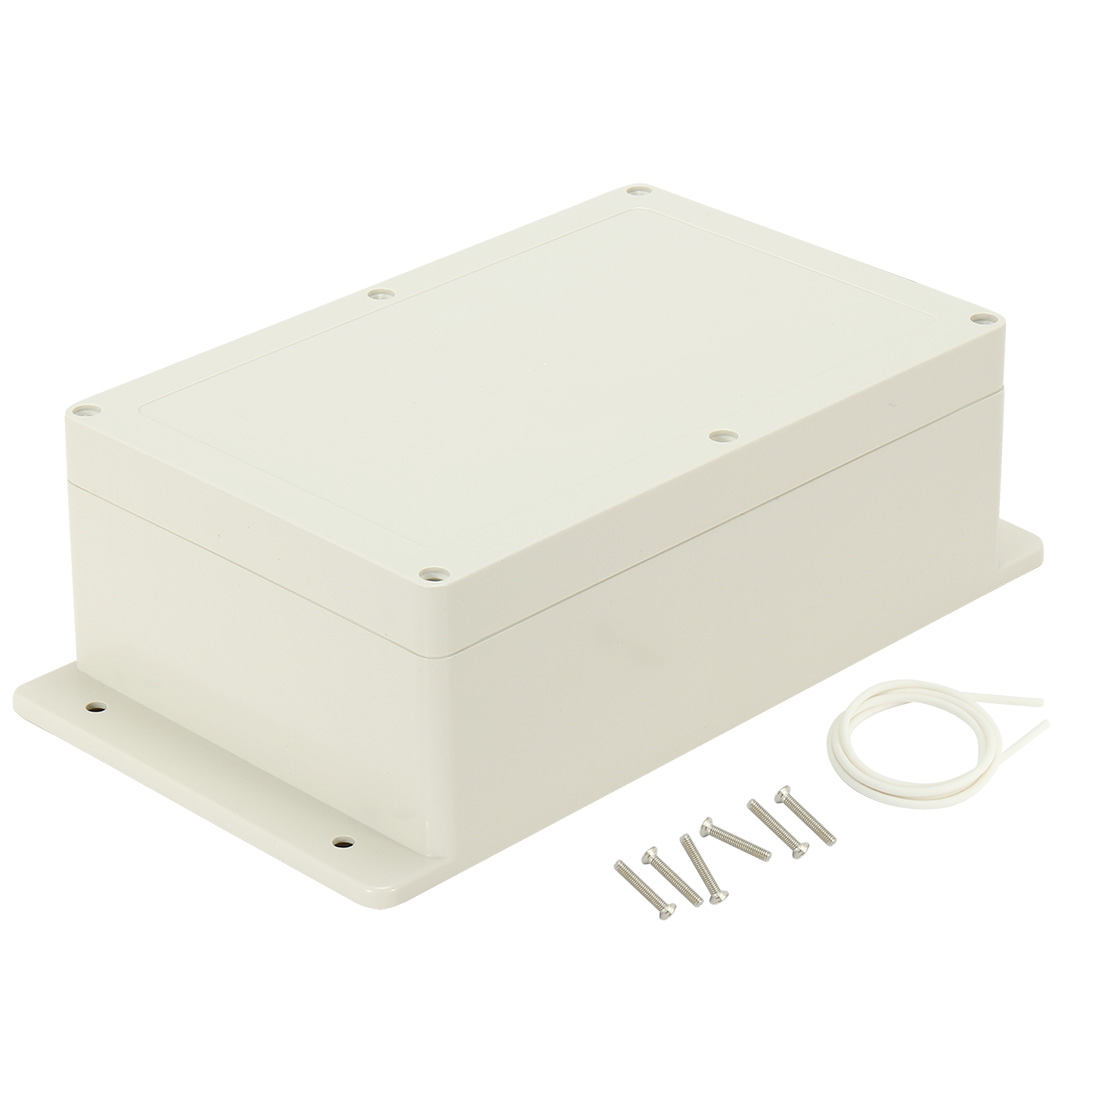 "9.06""x5.9""x3.43""(230mmx150mmx87mm) ABS Junction Box Universal Electric Project Enclosure w Fixed Ear"